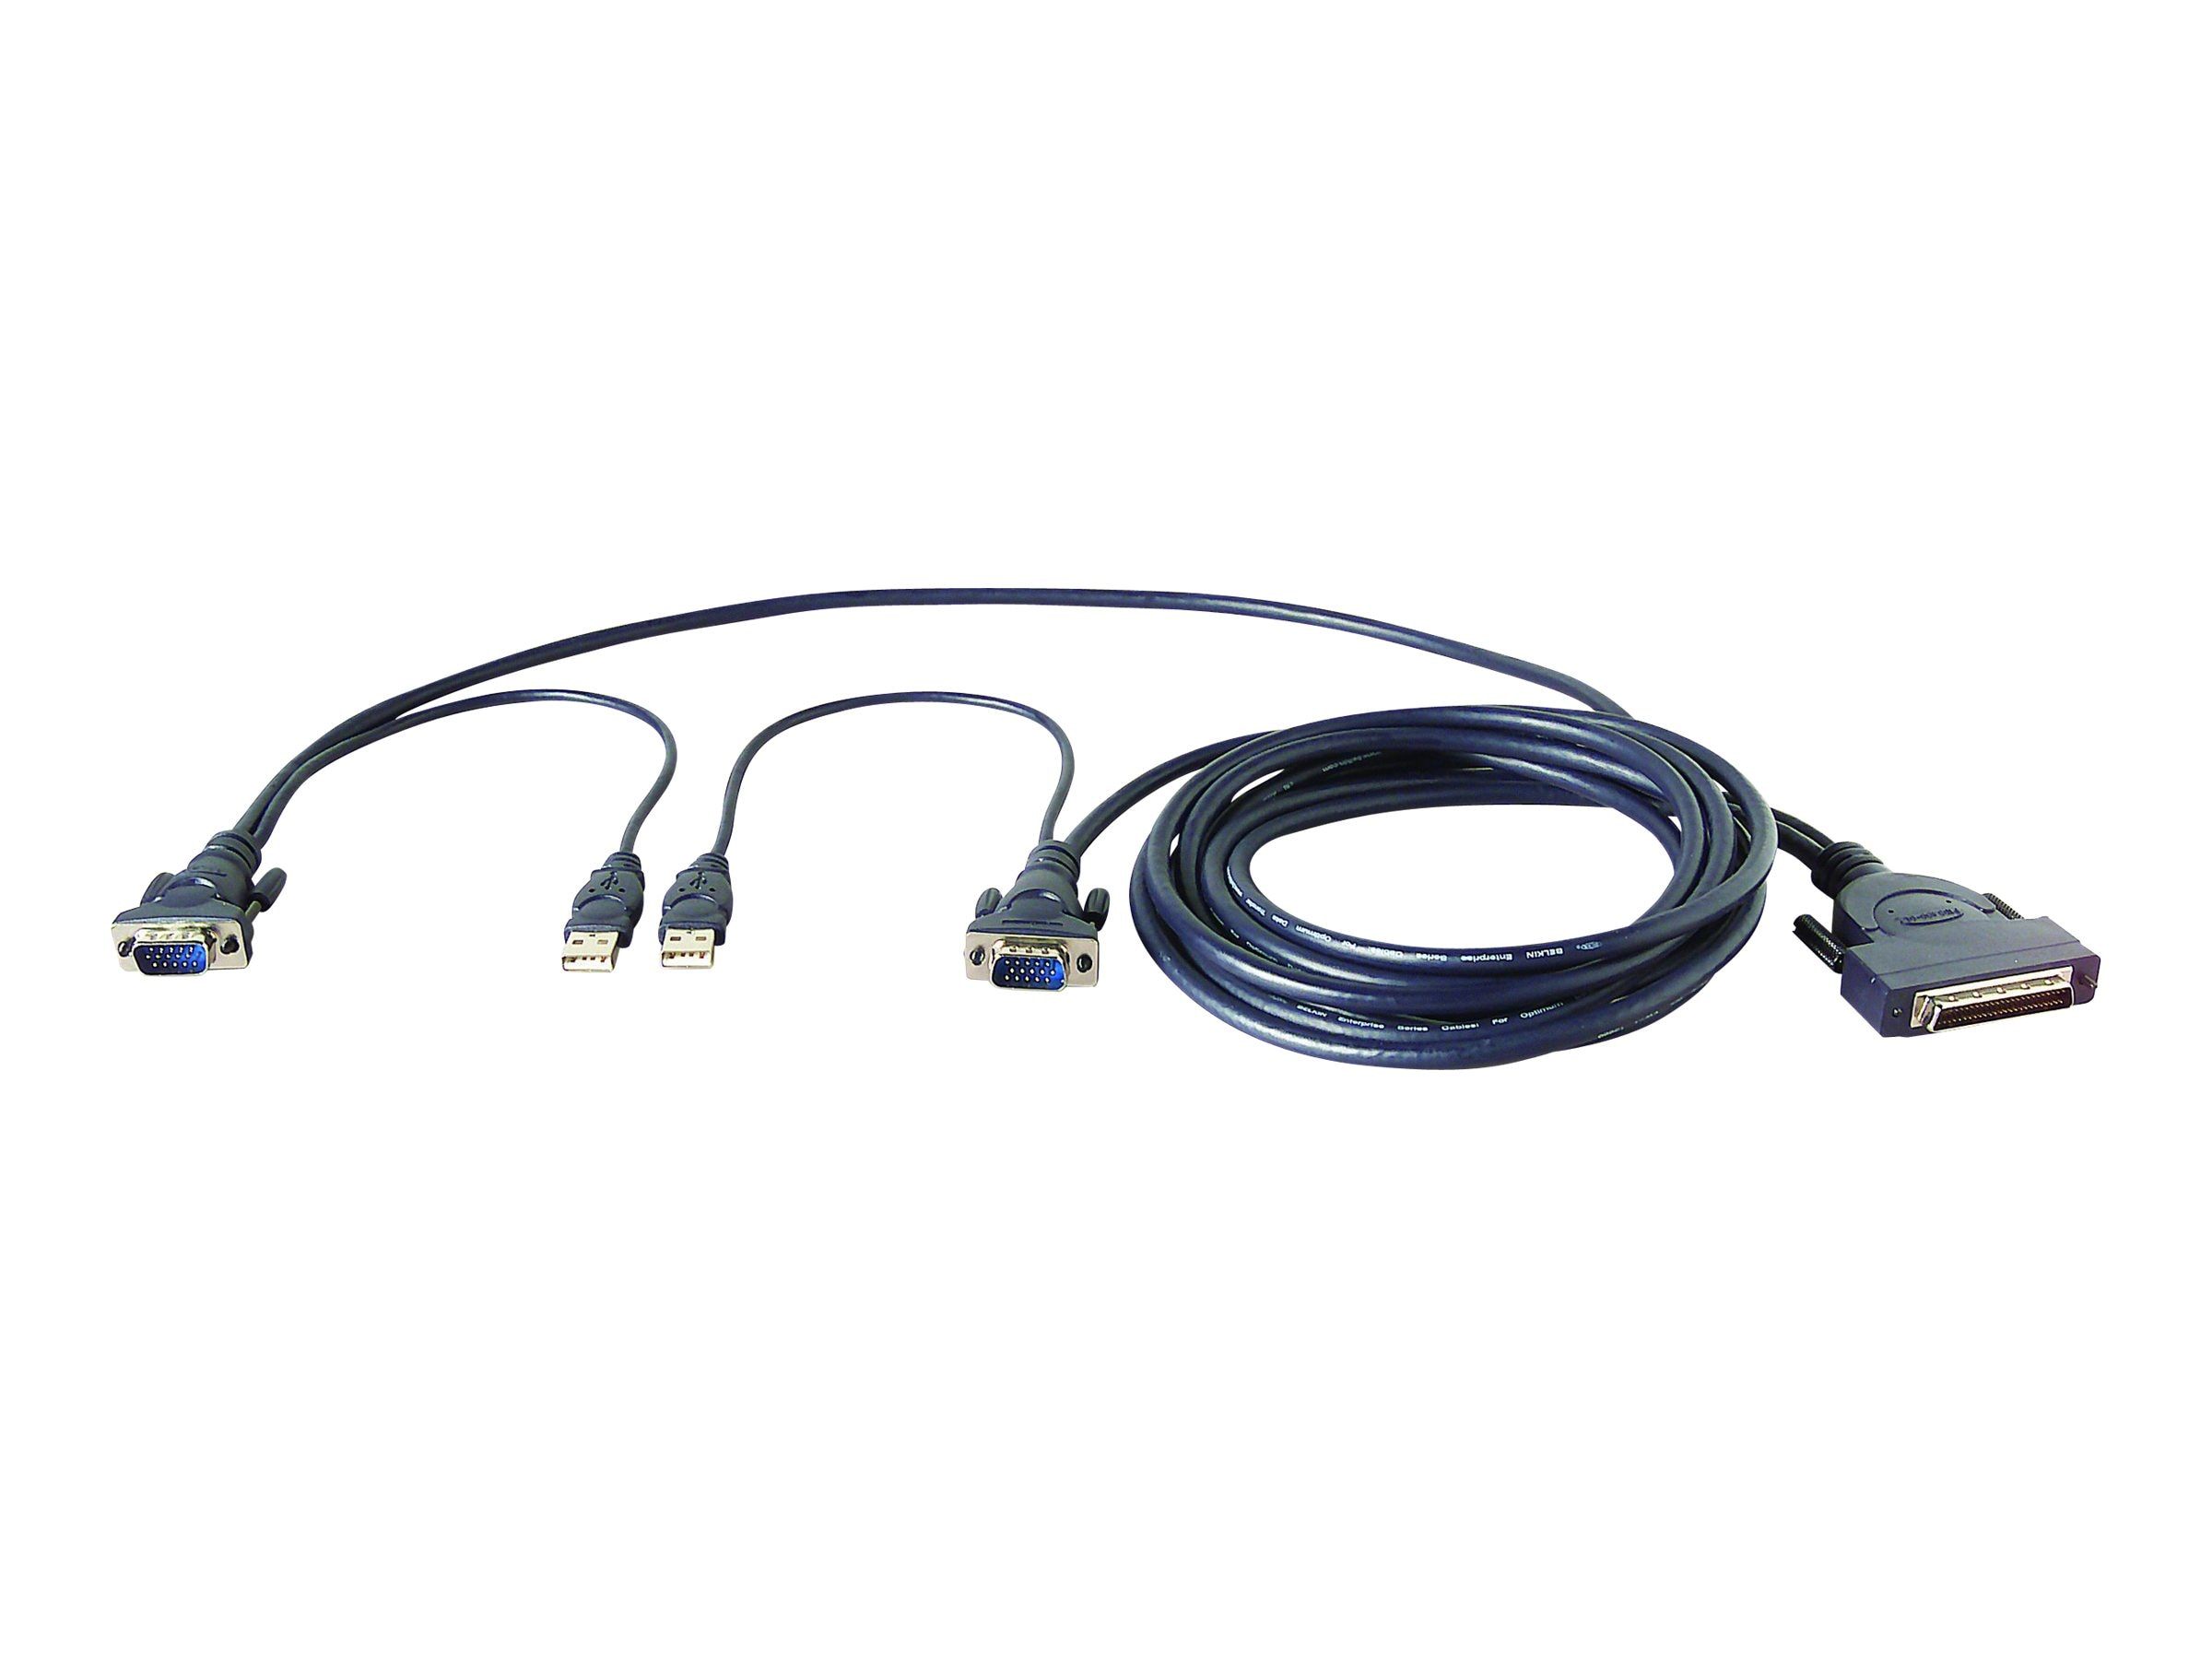 Belkin OmniView Enterprise Series Dual-Port USB KVM Cable, 6ft - bulk packaging